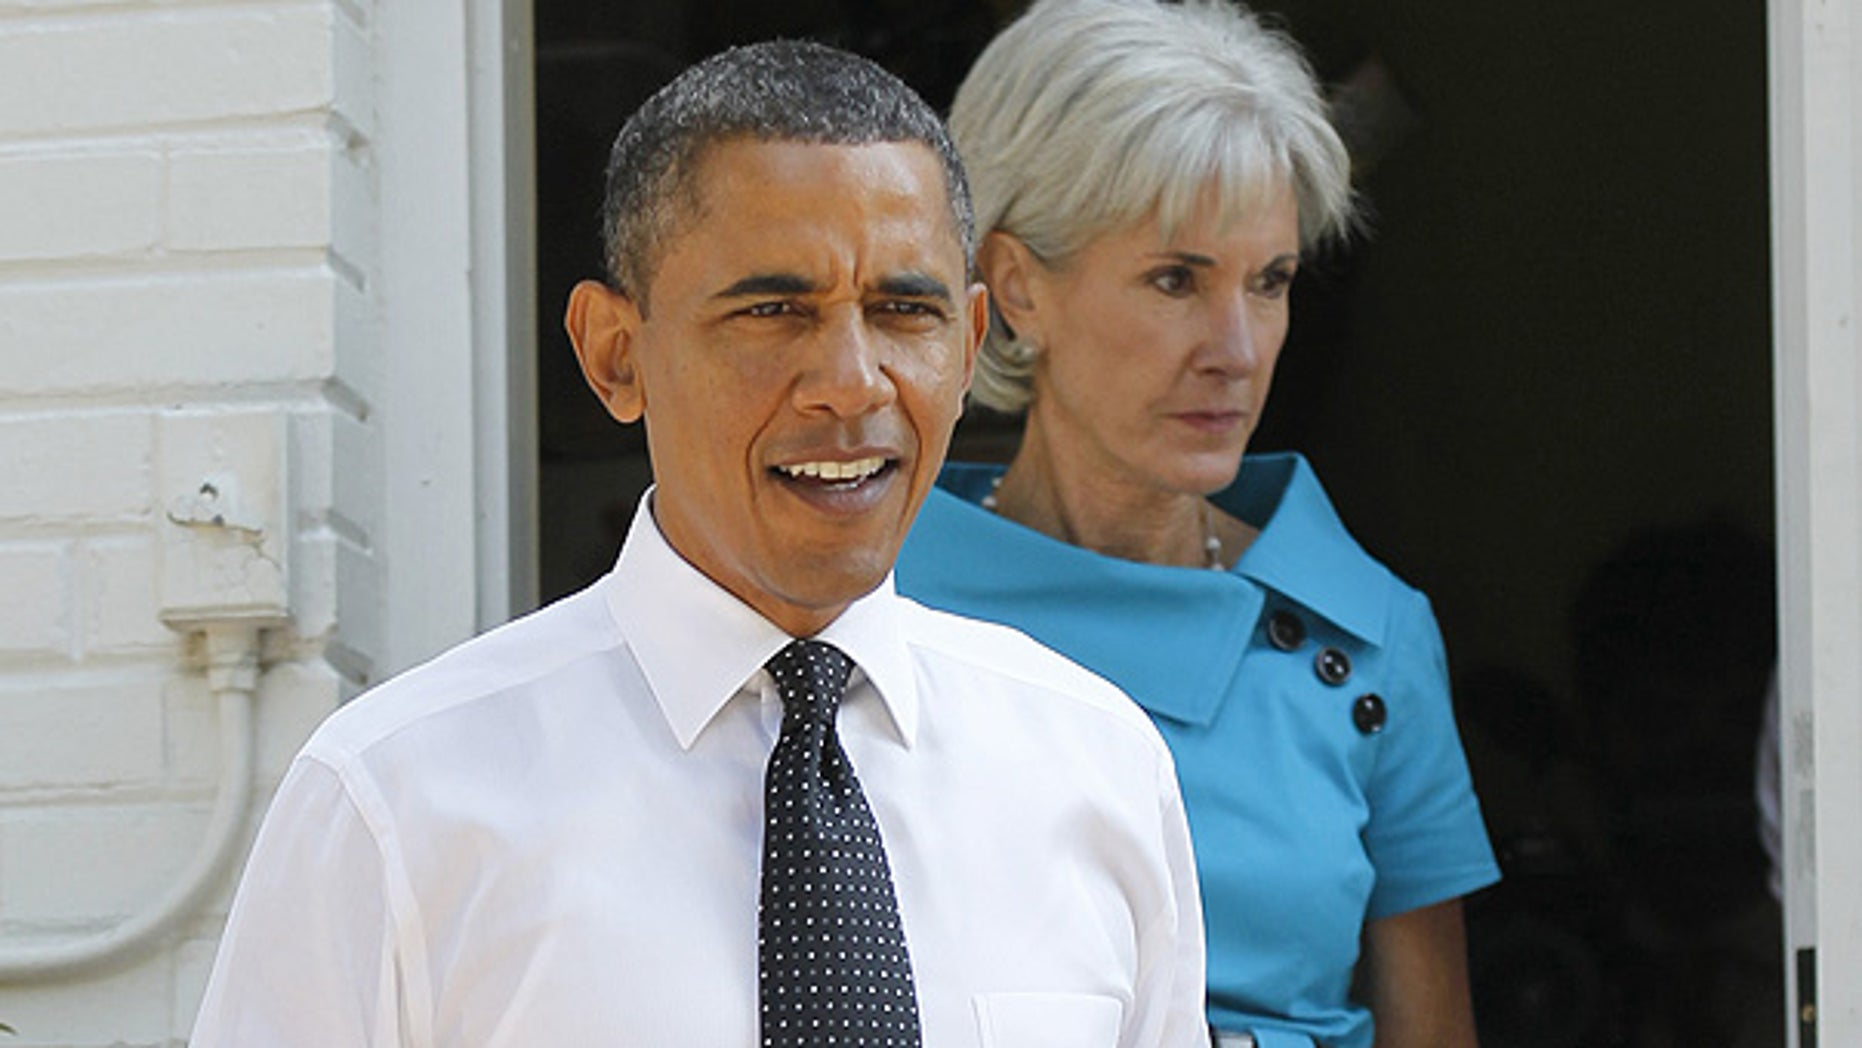 Sept. 22: President Obama, accompanied by Health and Human Services Secretary Kathleen Sebelius, arrives in the backyard of a private residence in Falls Church, Va.